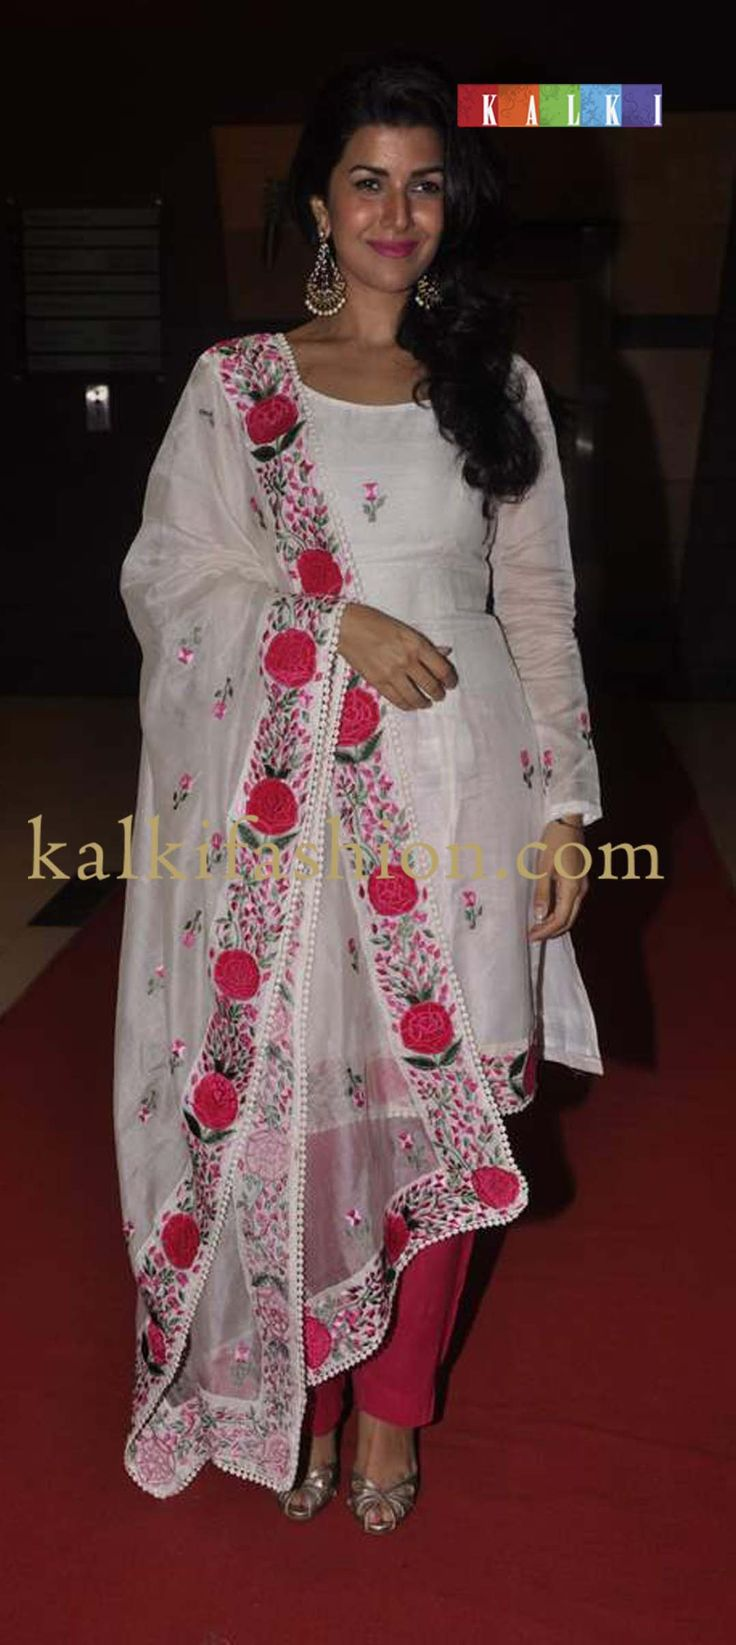 http://www.kalkifashion.com/ Namrit Kaur in an ethnic white salwar kameez with rose motif embroidery at the 4th Jagran film festival .